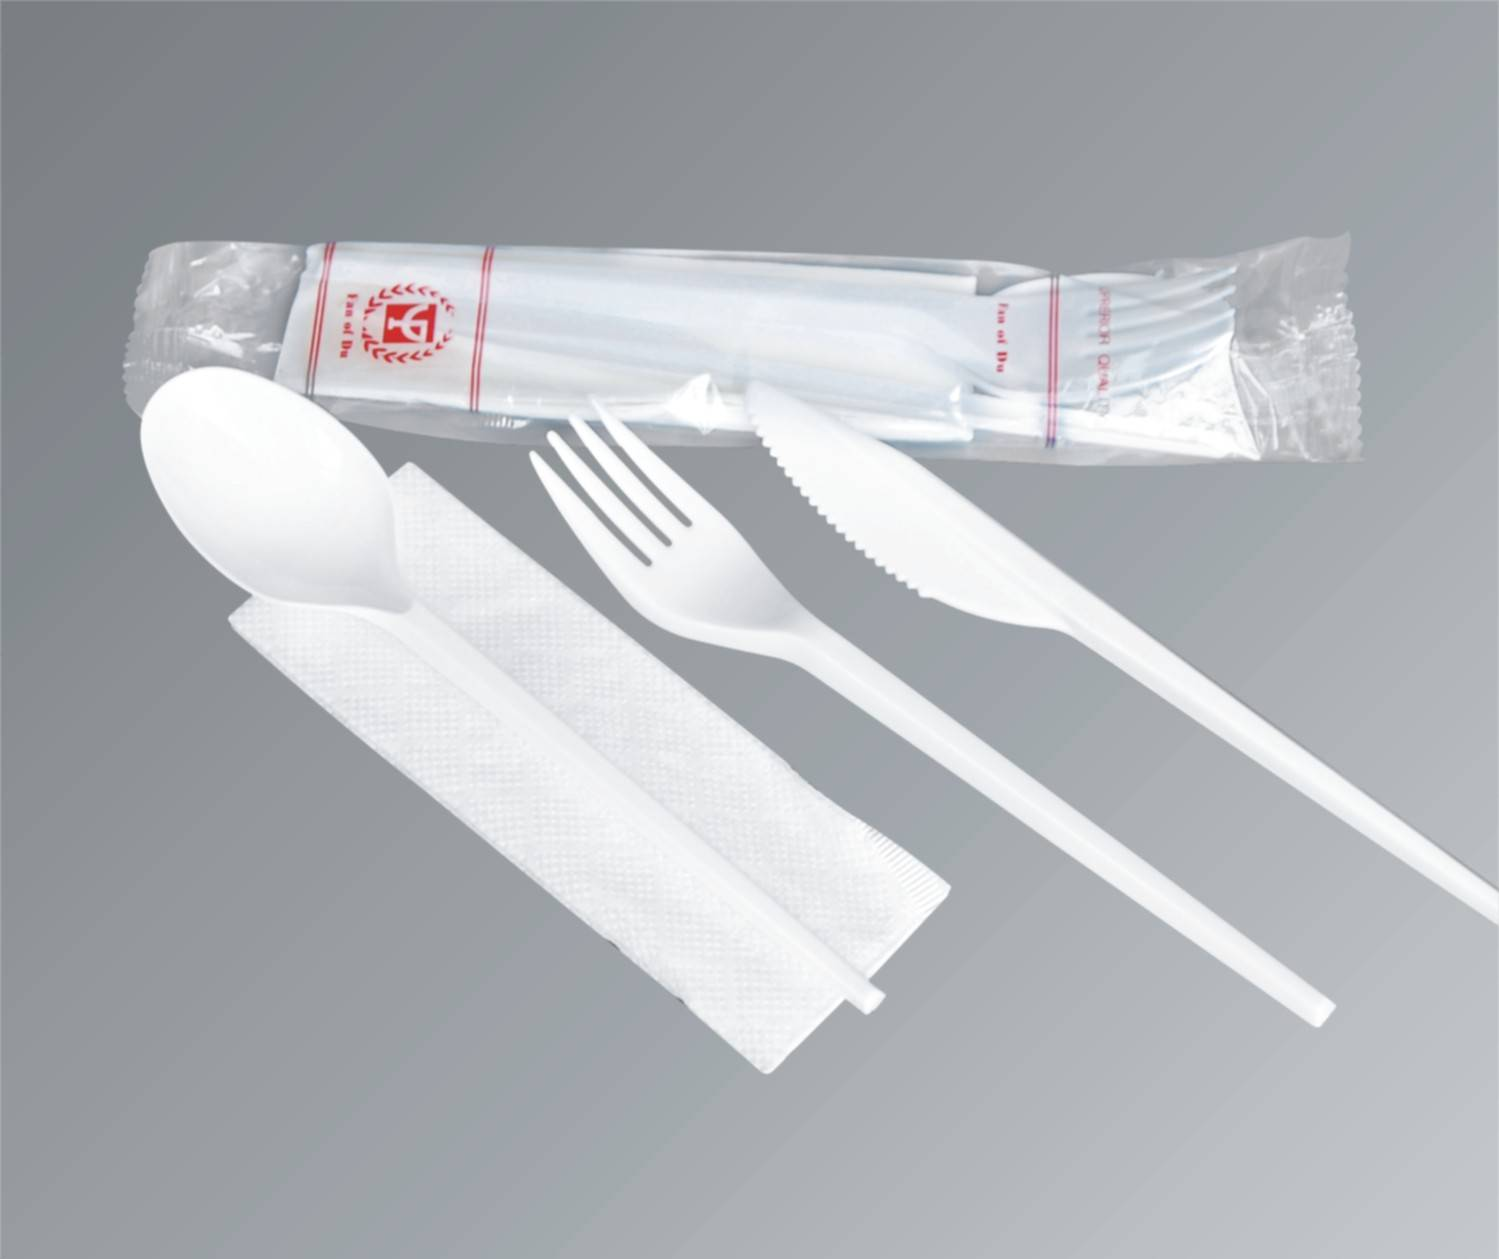 Sell cutlery pack, cutlery sets, cutlery kits